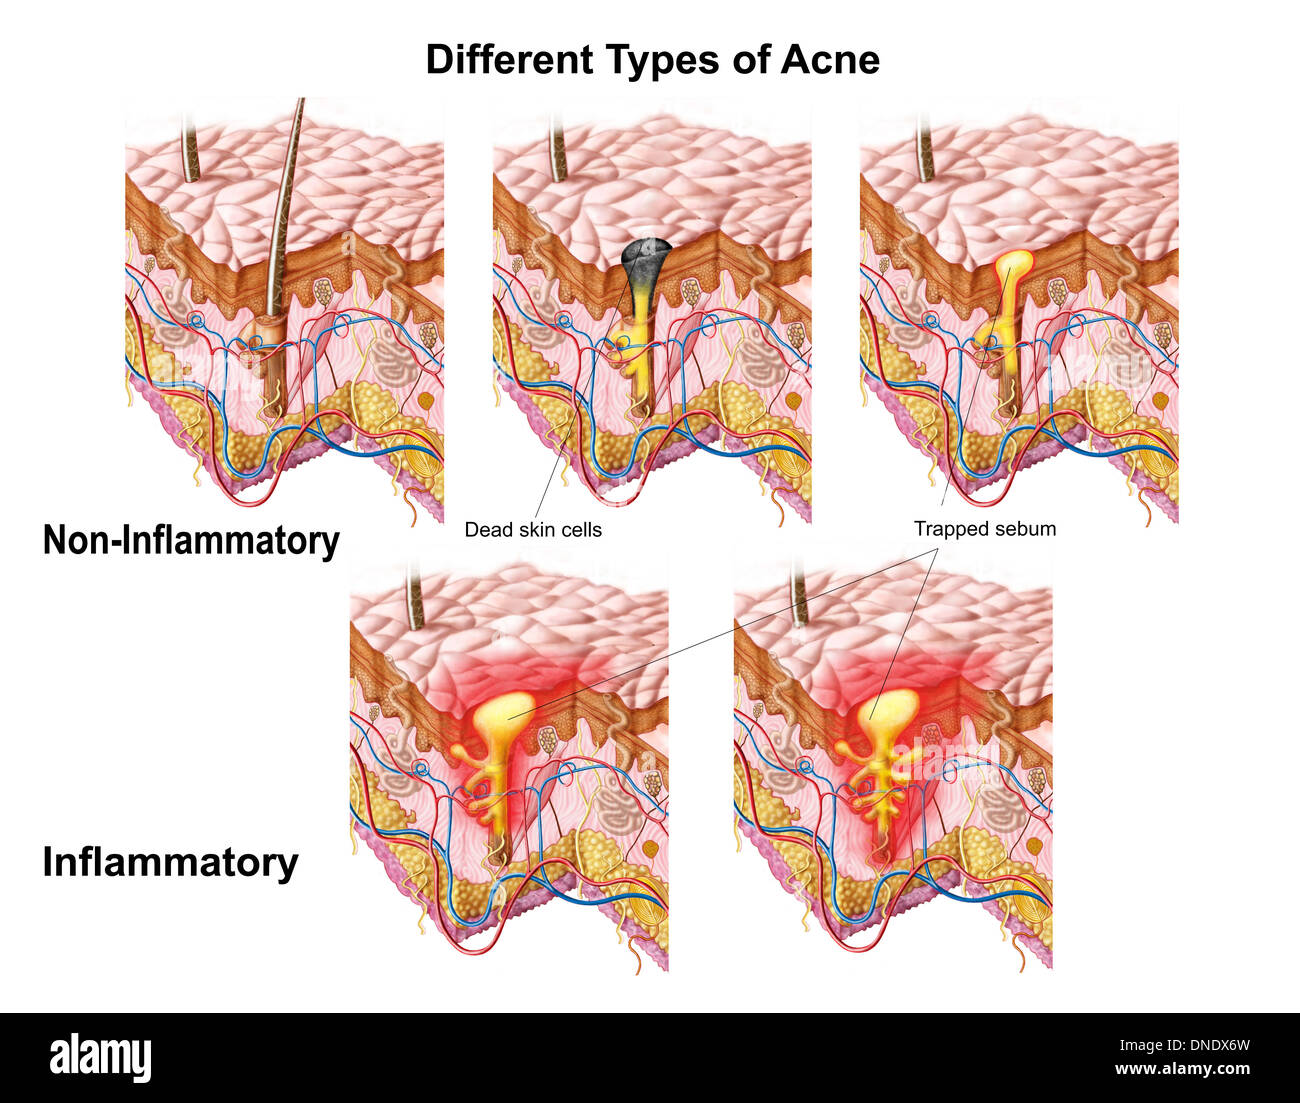 Different types of acne, non-inflammatory and inflammatory. - Stock Image